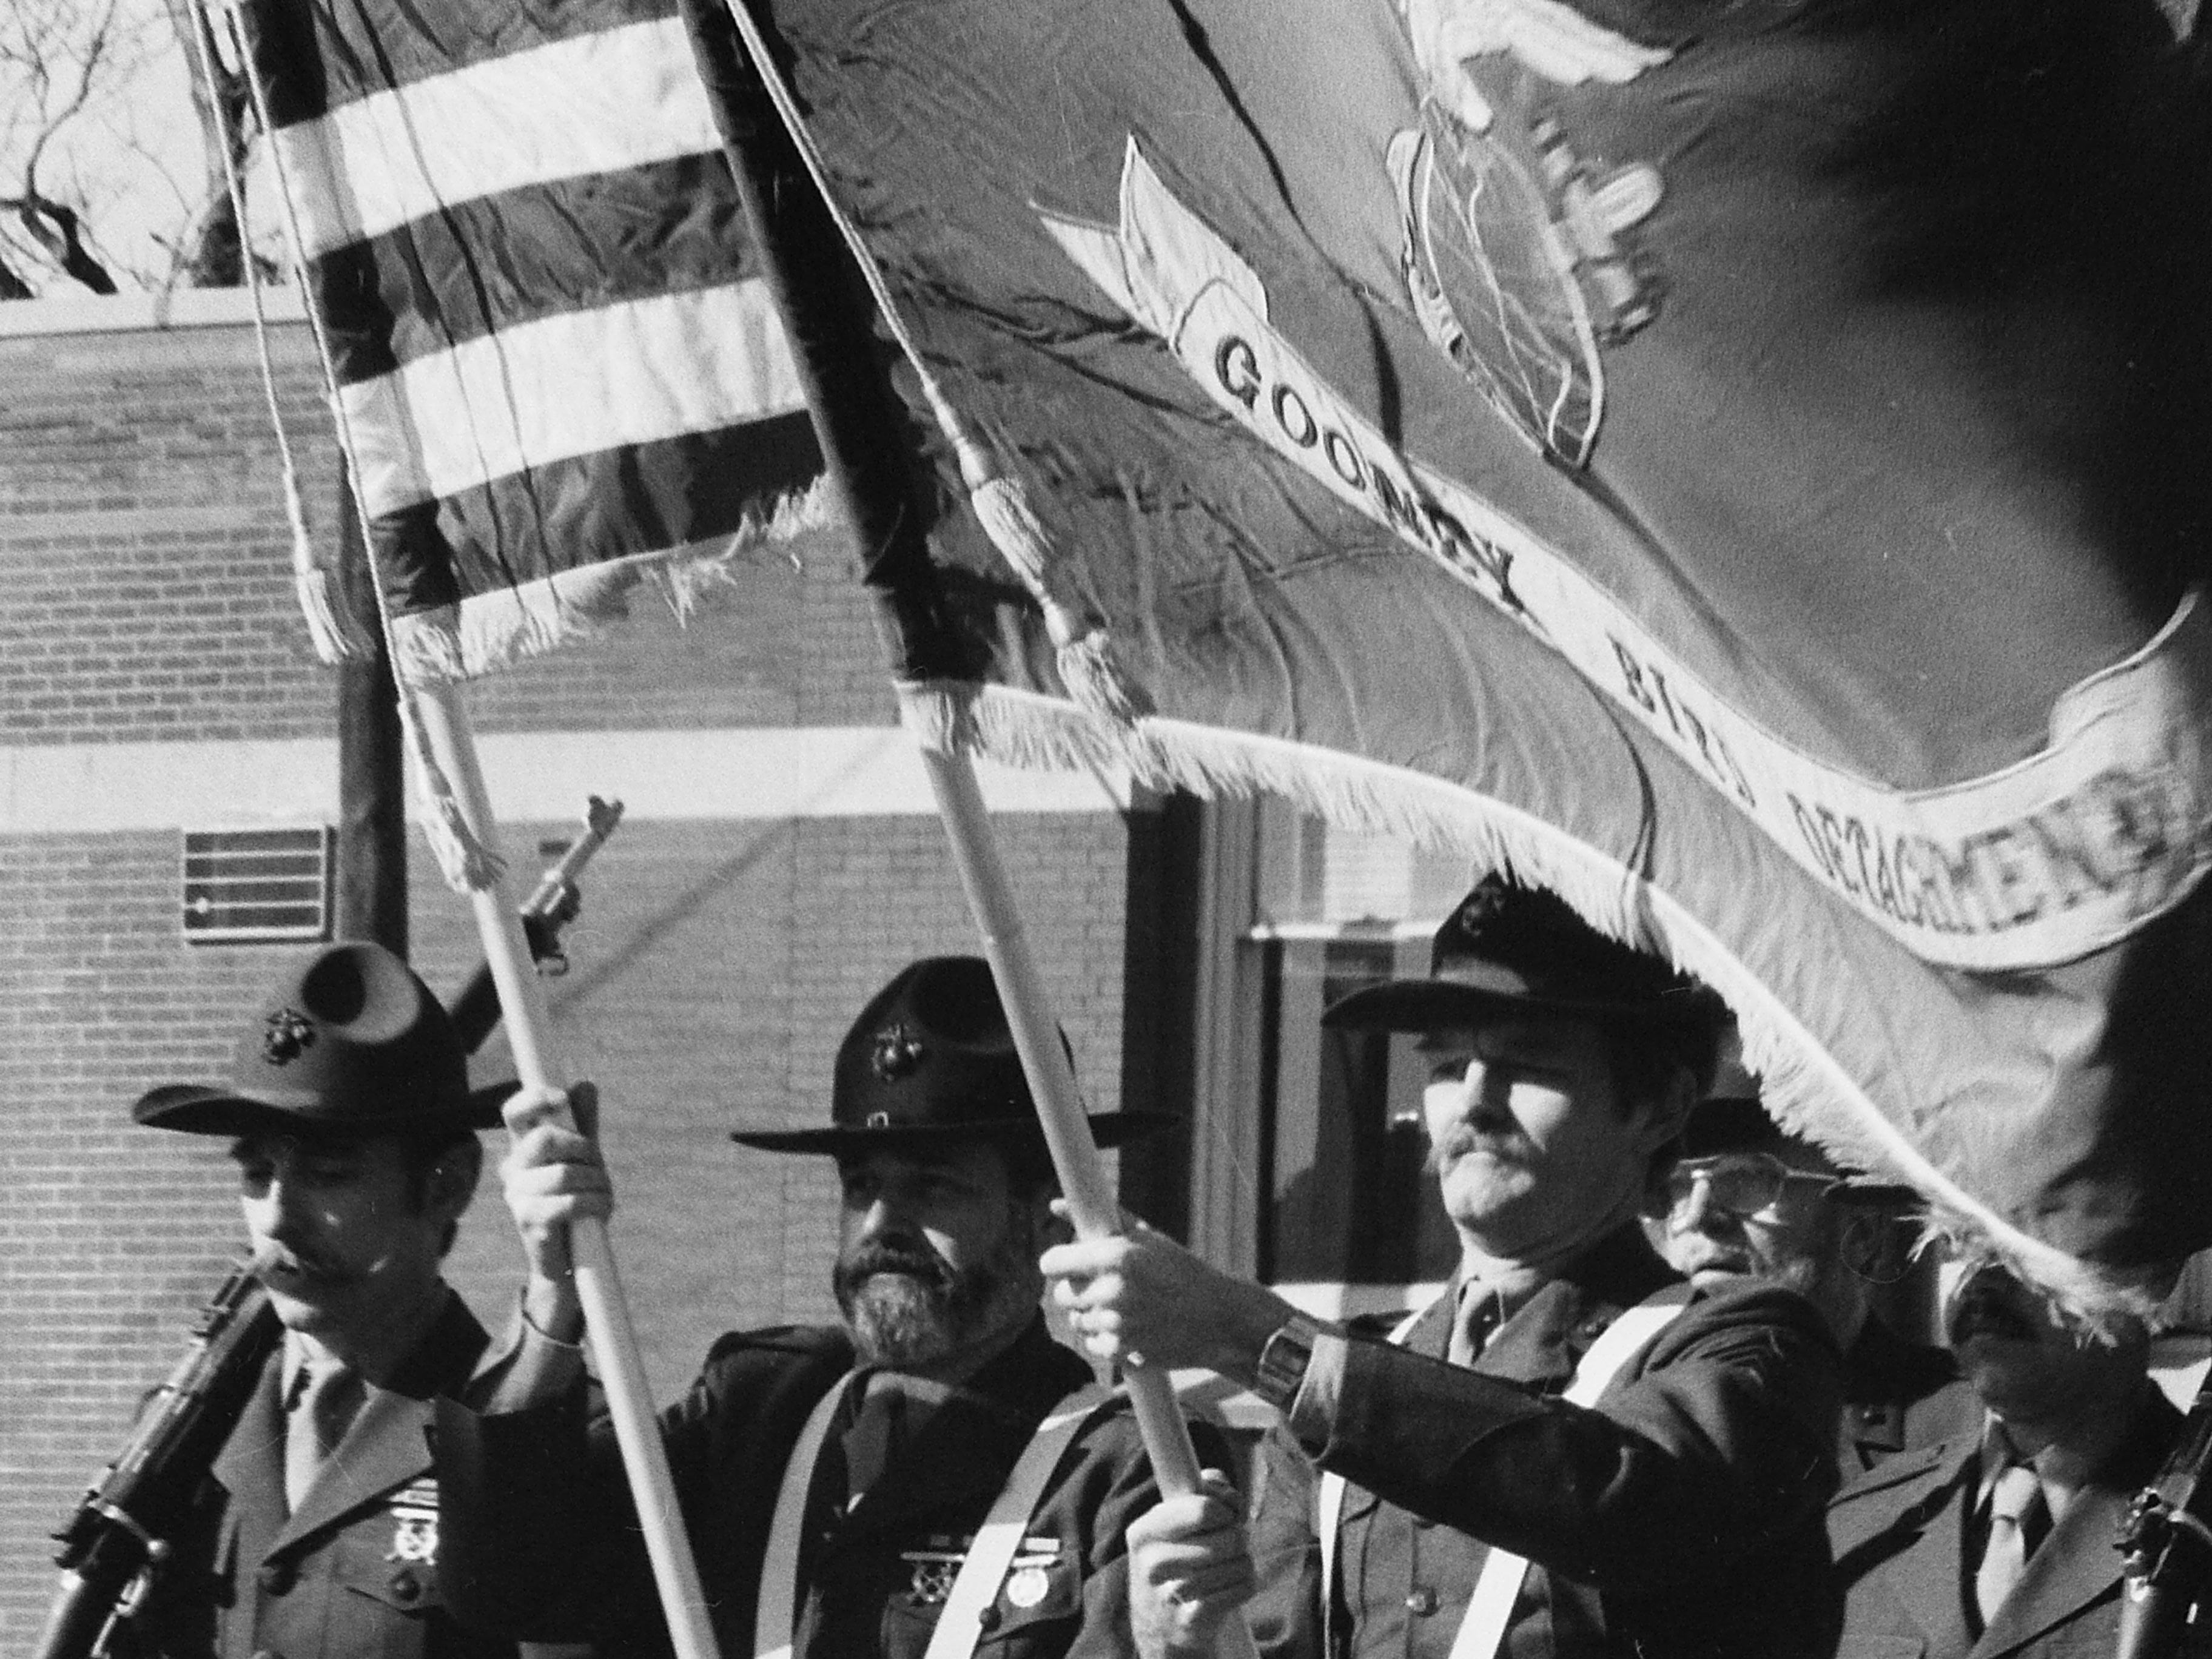 Scenes from the first annual Bergen County St. Patrick's Day Parade in Hackensack, N.J., March 14, 1982.